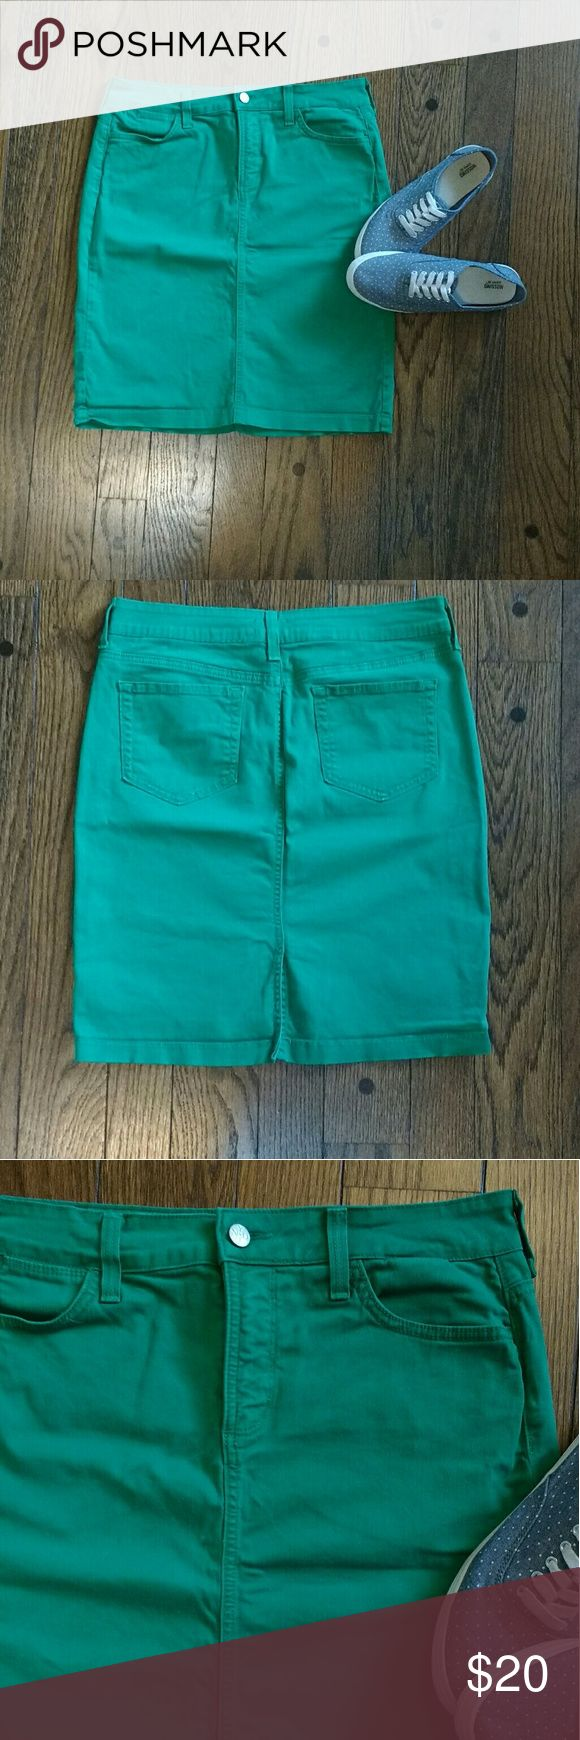 NYDJ Denim Green Pencil Skirt NYDJ Kelly green denim skirt. Knee length. Material has some stretch, very comfortable. You will love this skirt! NYDJ Skirts Pencil